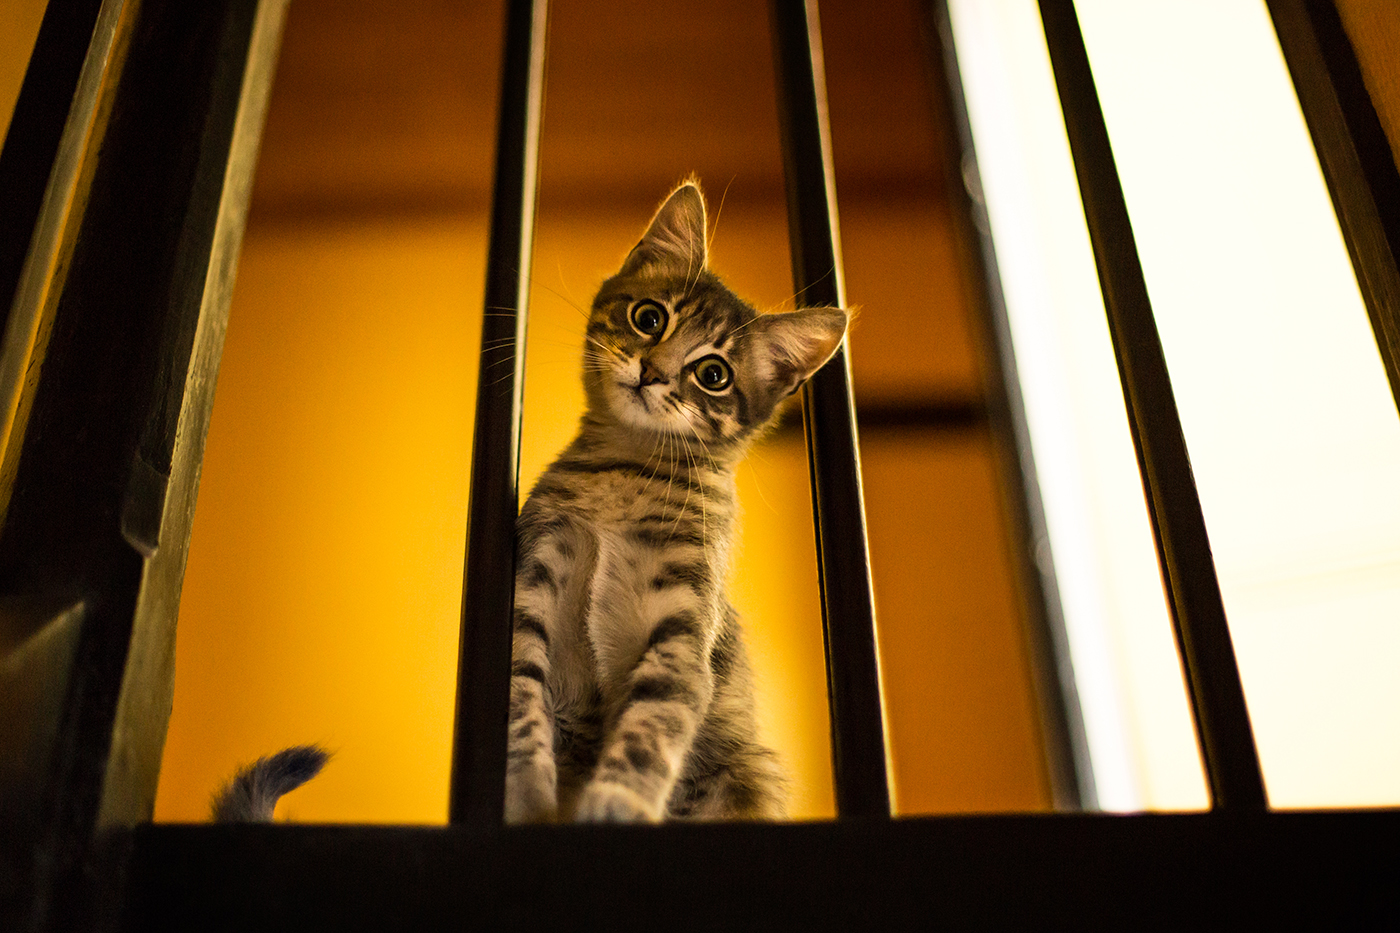 photographe-animaux-domestiques-chat-guillaume-heraud-17